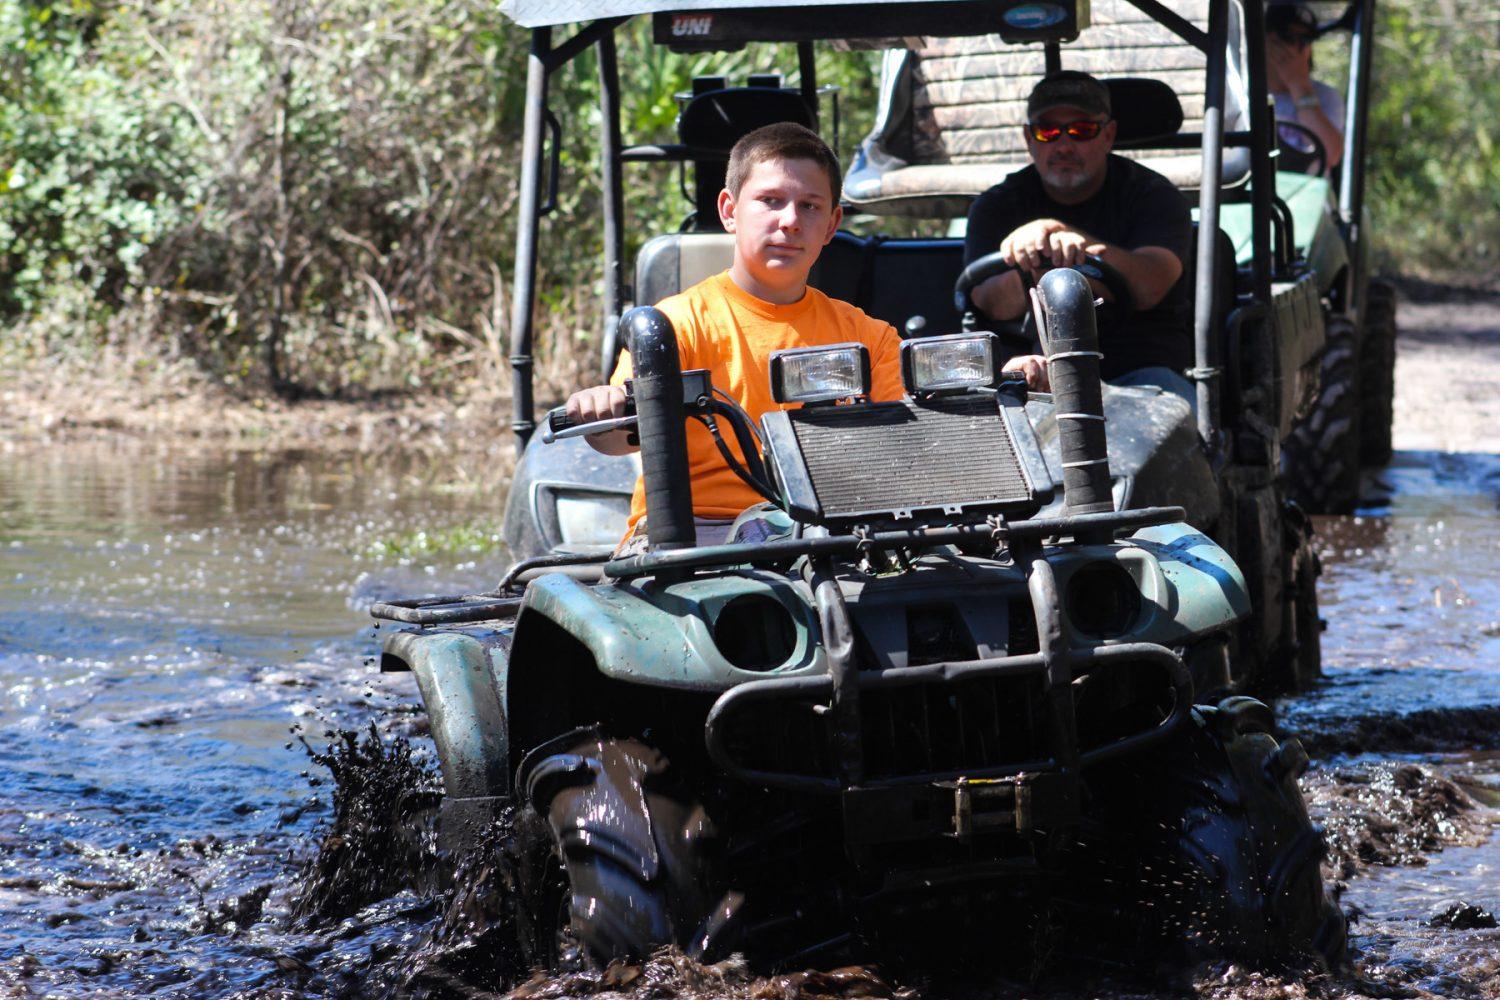 Dustin Carter, 14, rides through a mud hole with his family on the Hog Waller property on Sunday afternoon, March 2, 2014.